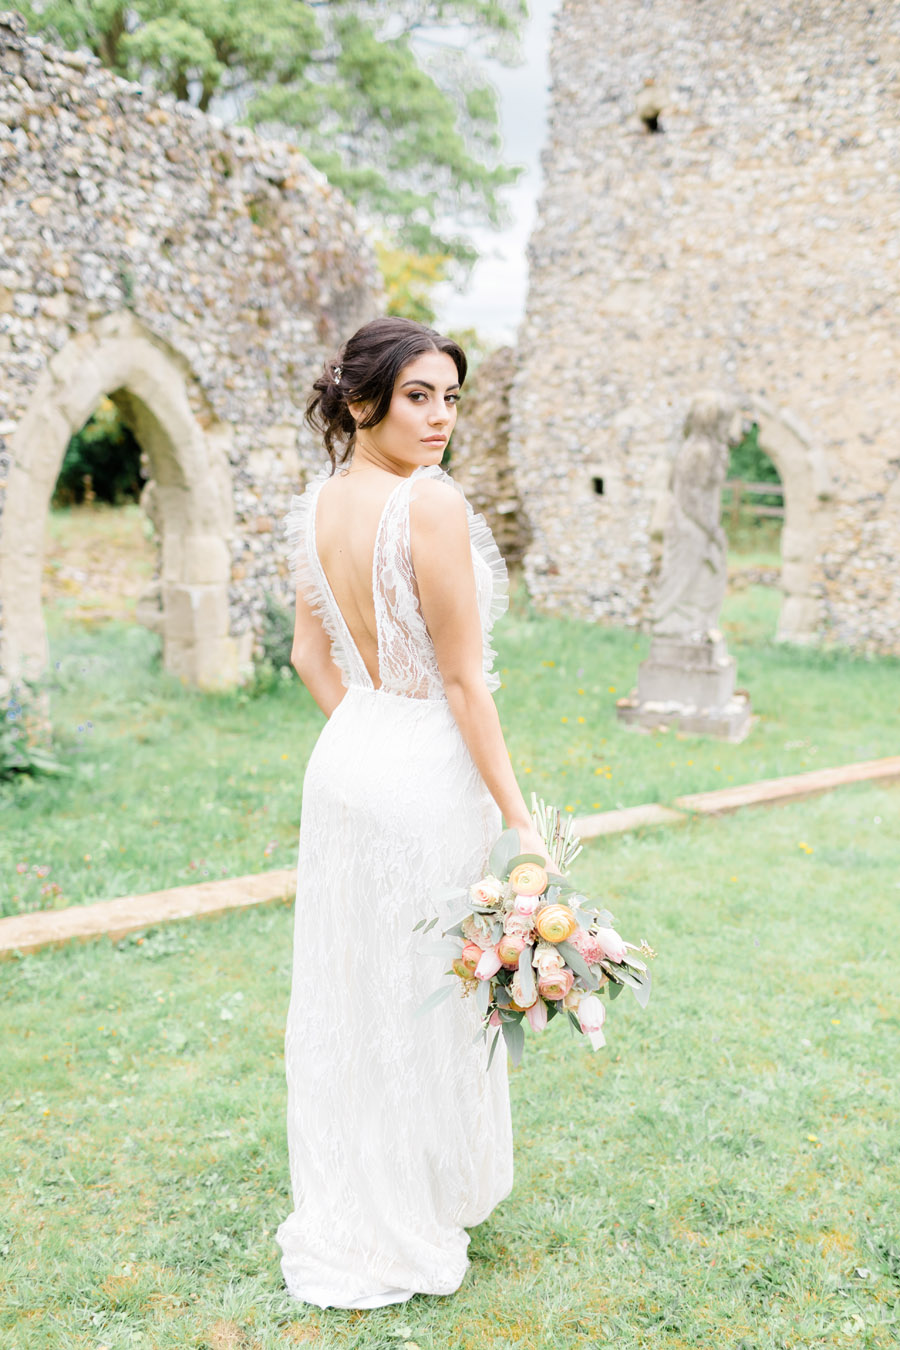 Romantic ethereal wedding styling ideas with Natalie Stevenson Photography (4)